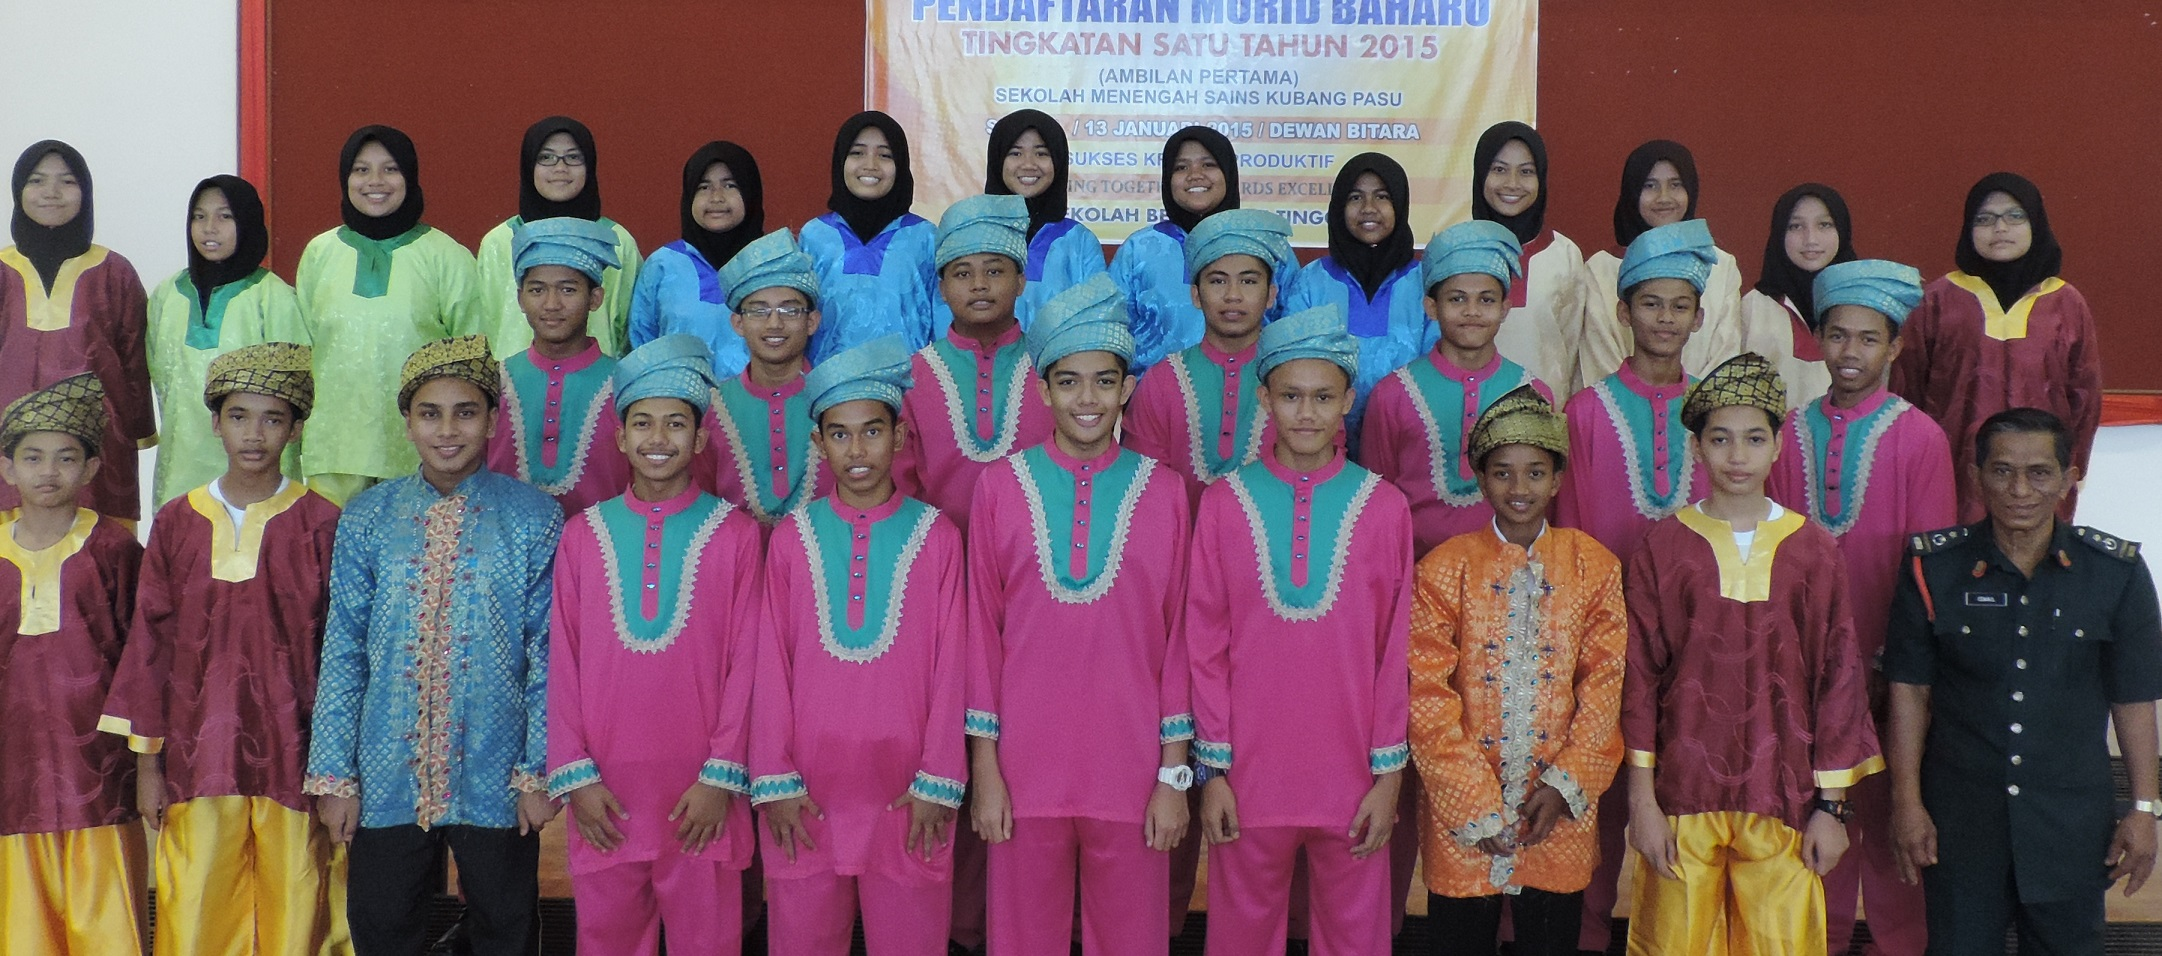 Group photo of The Sekolah Menengah Sains Kubang Pasu Dikir Barat Troupe